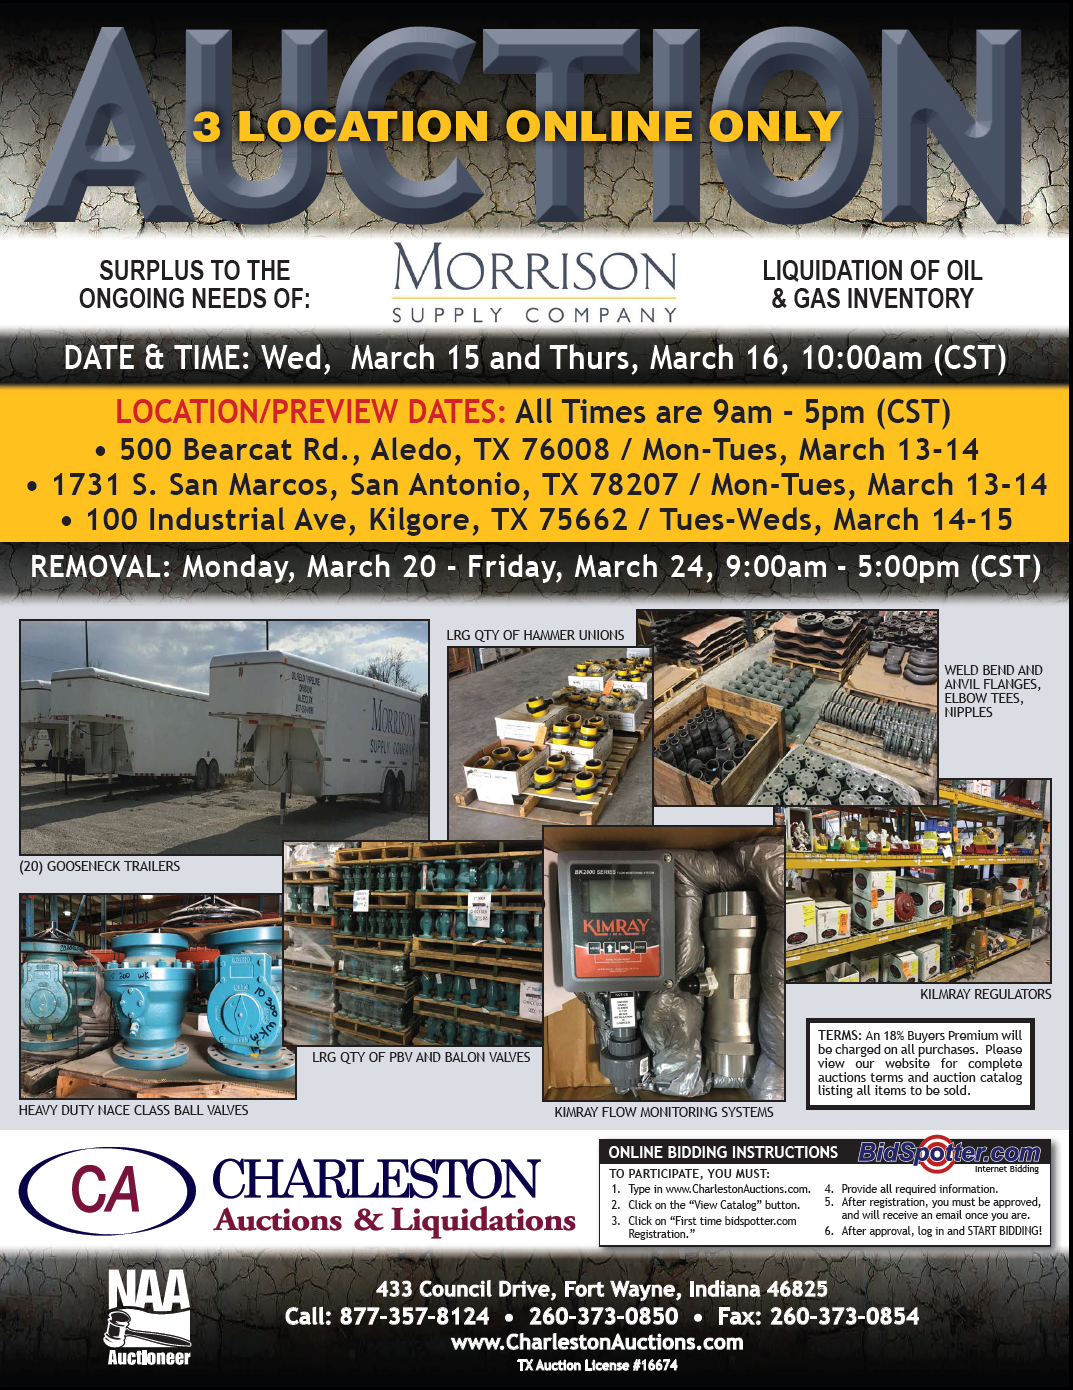 Charleston Auctions - Past Projects / Case Studies